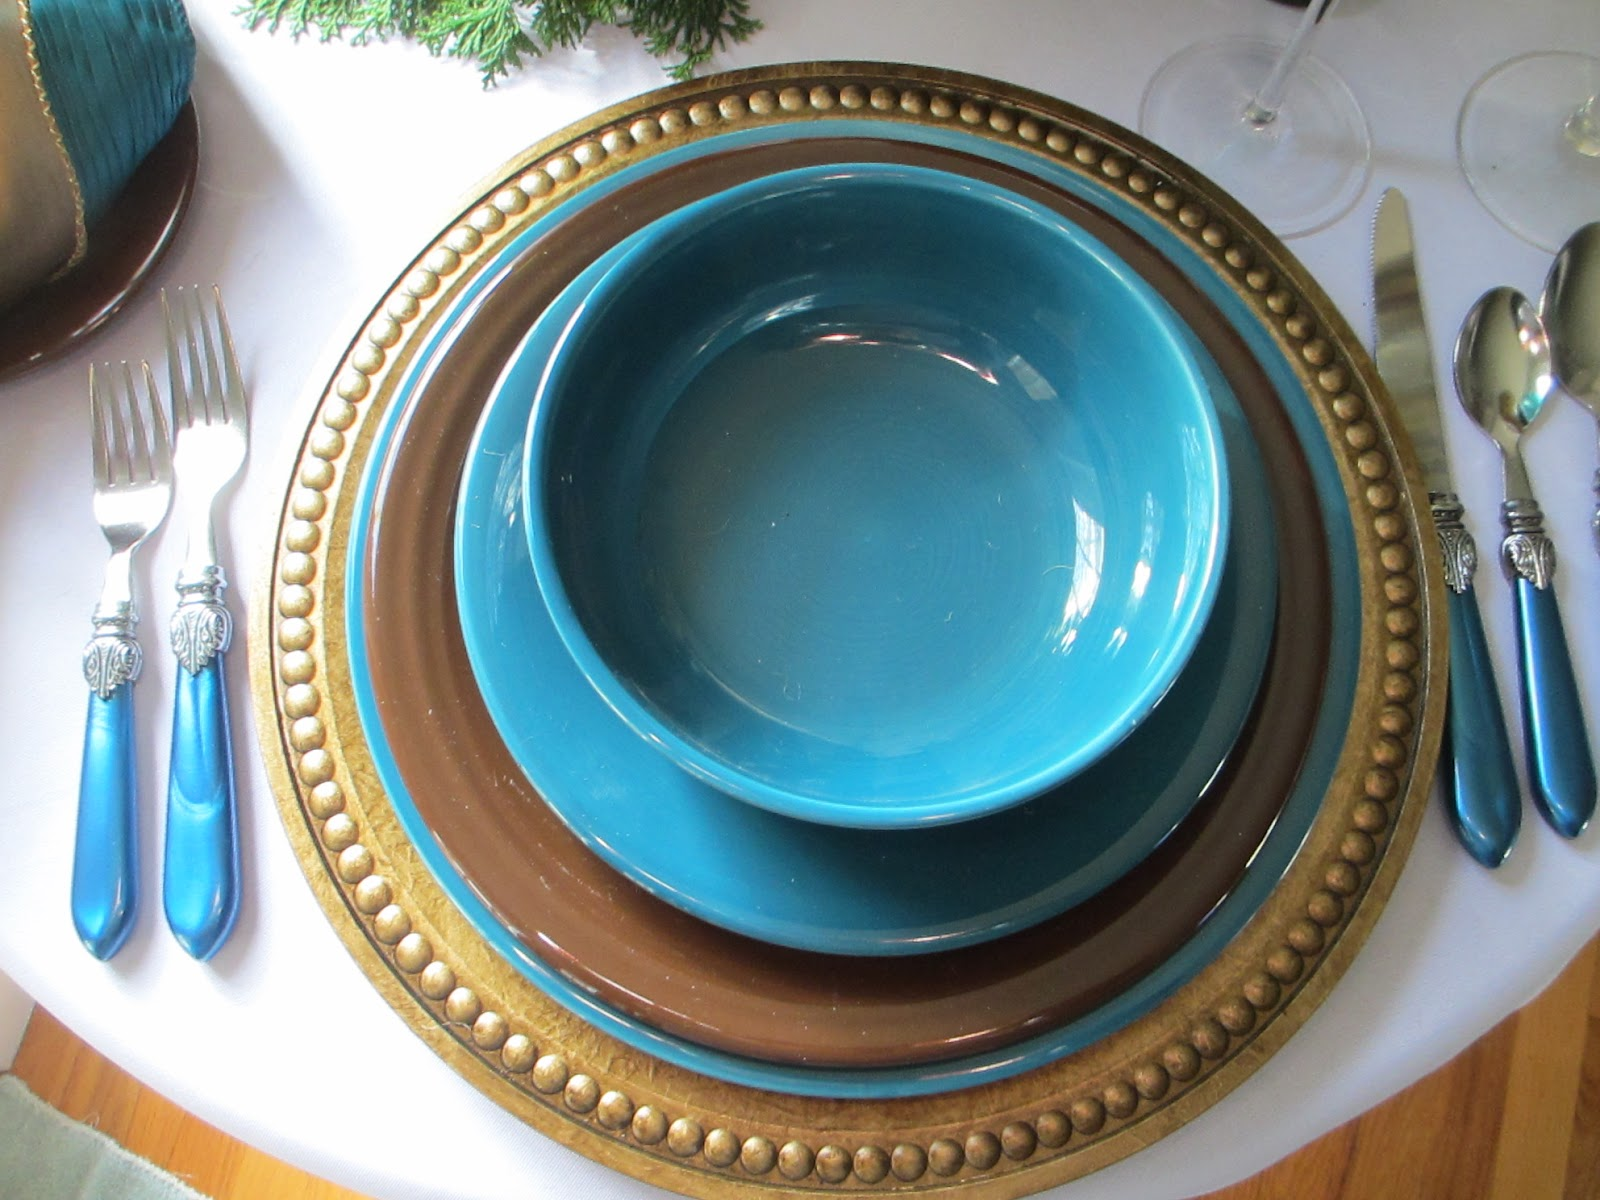 The dinner plate and bread/butter plate are  Chocolate  Fiesta from Homer Laughlin & Table for One: Chocolate Brown and Blue Santa Table